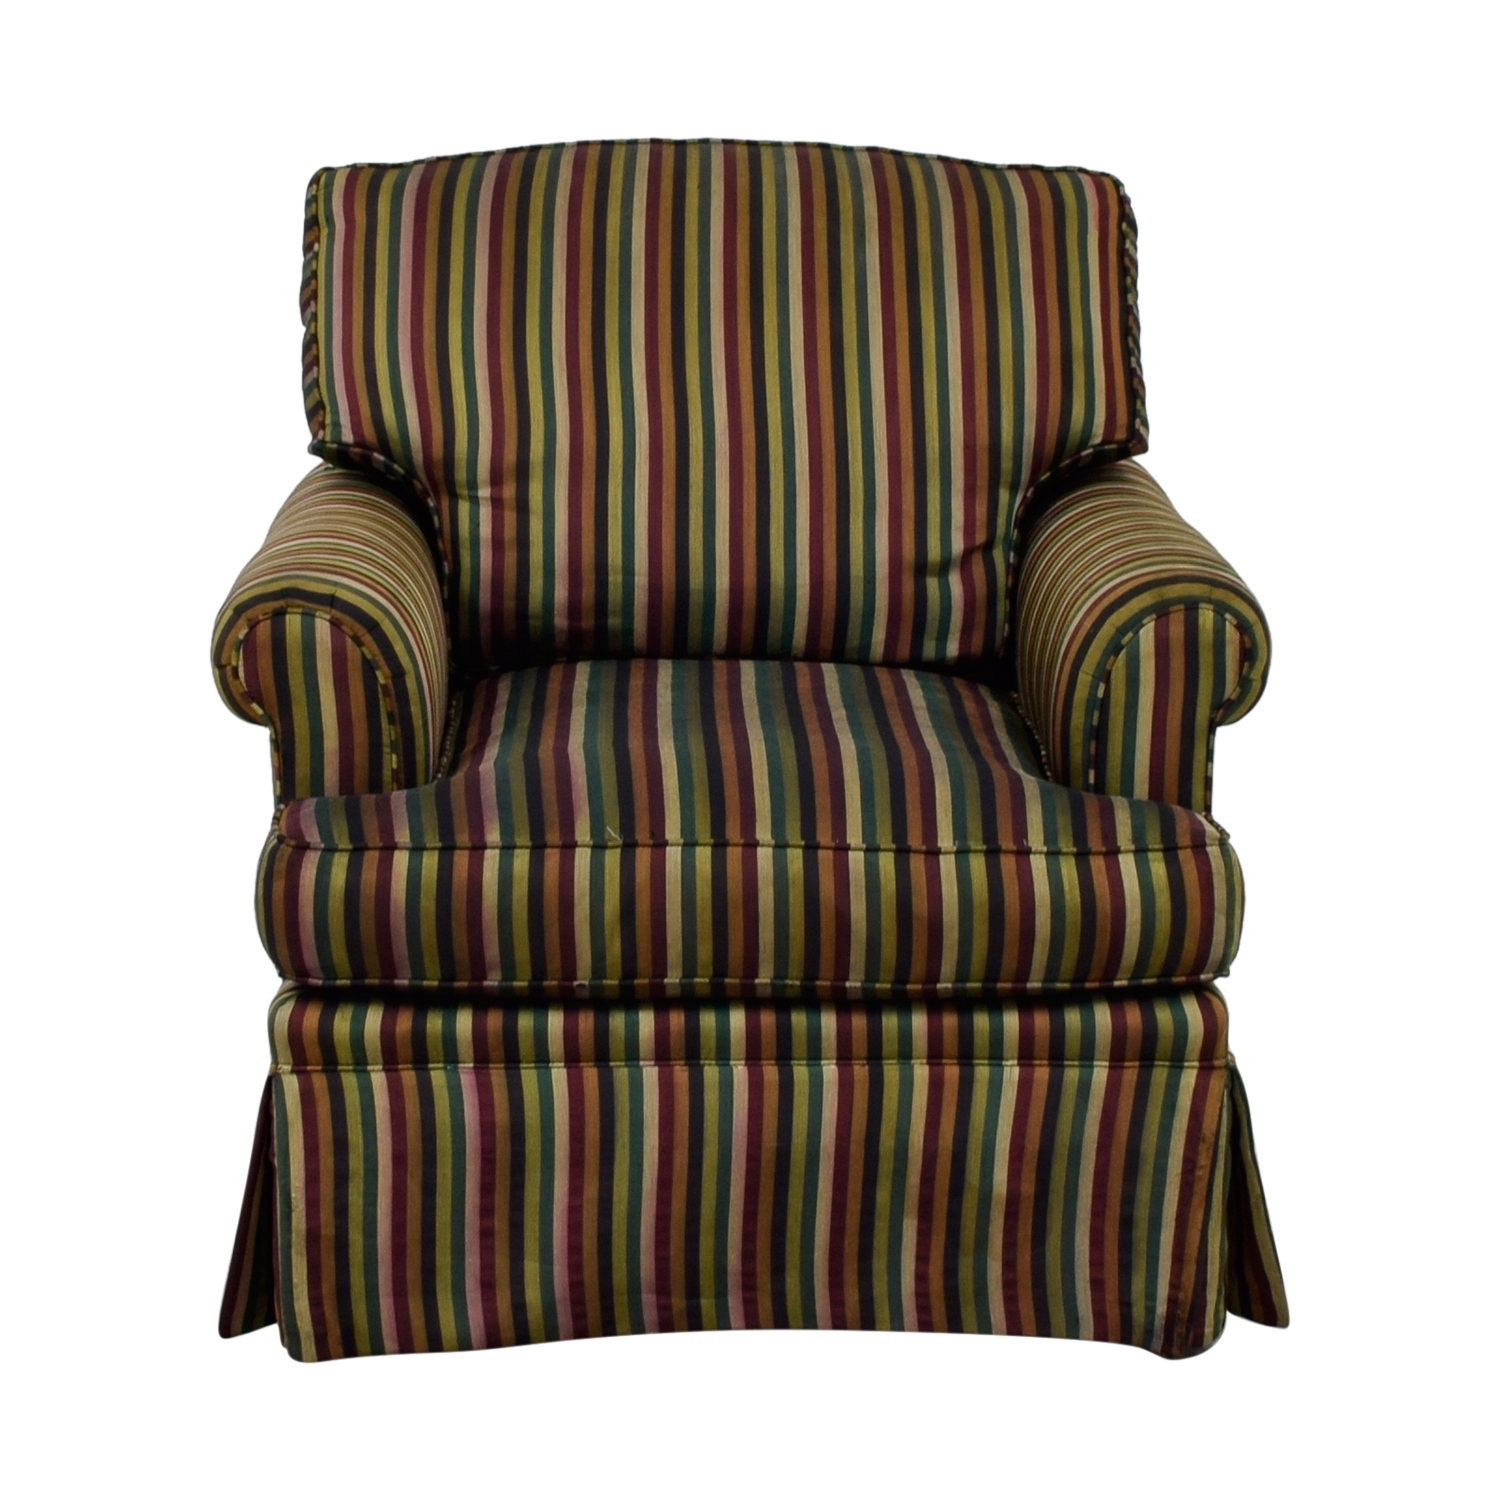 [%90% Off – The Lane Company The Lane Company Pearson Stripe Chair With Regard To Popular Pearson White Slipcovered Side Chairs Pearson White Slipcovered Side Chairs For Fashionable 90% Off – The Lane Company The Lane Company Pearson Stripe Chair Best And Newest Pearson White Slipcovered Side Chairs With 90% Off – The Lane Company The Lane Company Pearson Stripe Chair Latest 90% Off – The Lane Company The Lane Company Pearson Stripe Chair Pertaining To Pearson White Slipcovered Side Chairs%] (View 15 of 20)